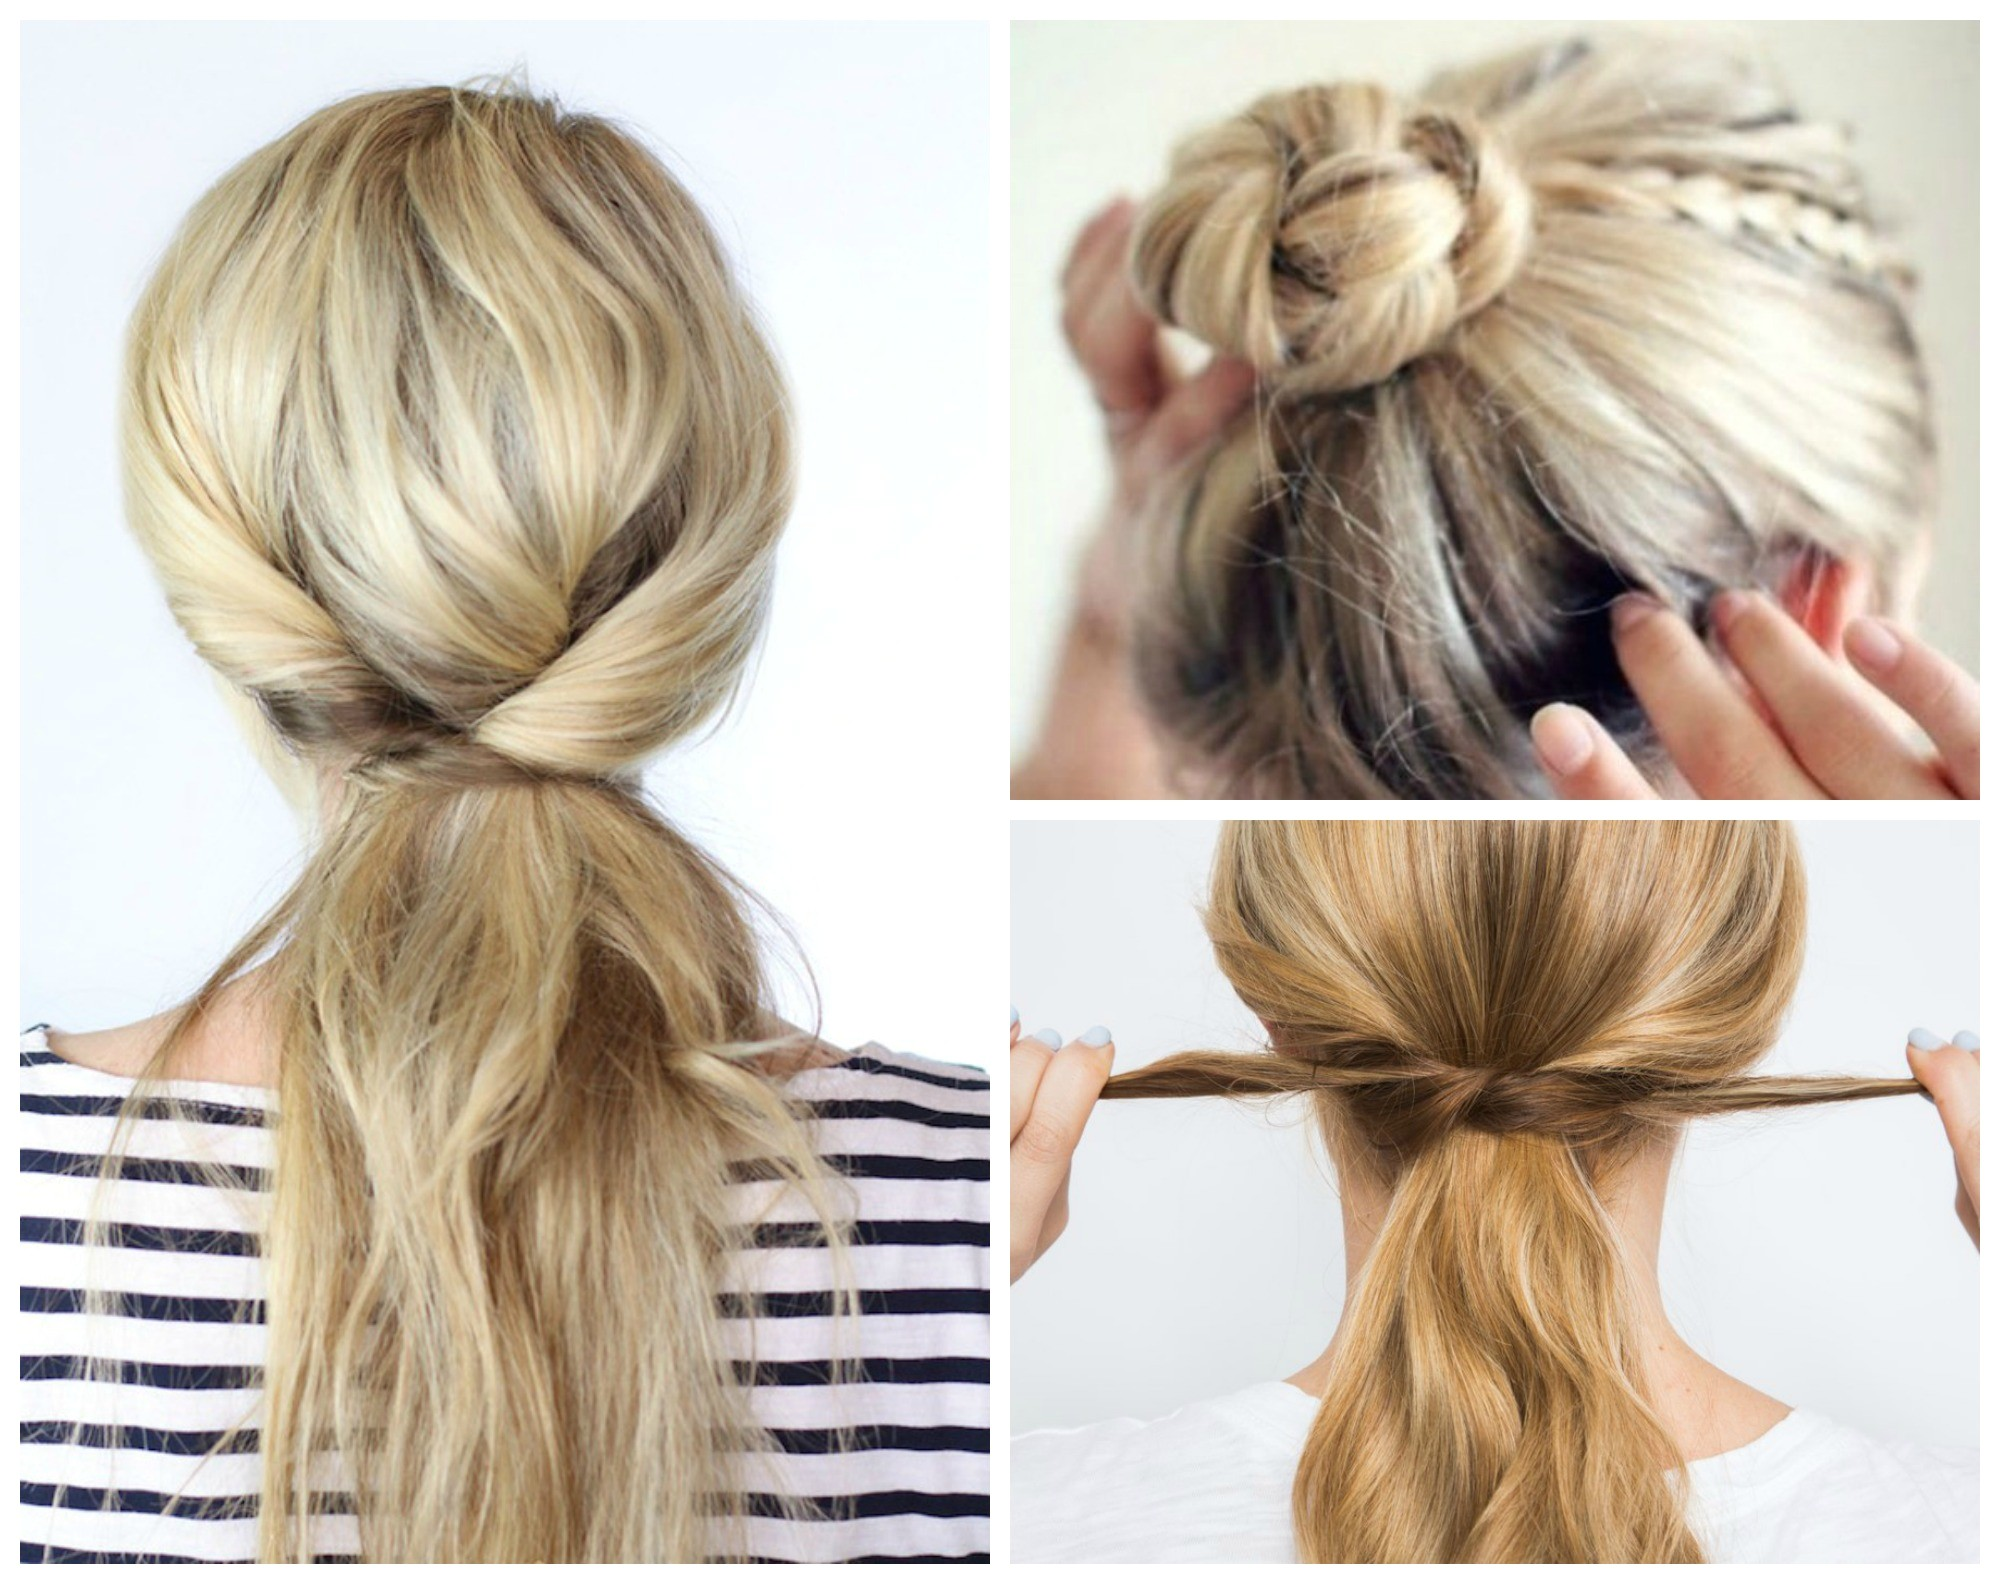 8 beyond easy 5 minute hairstyles crazy busy mornings